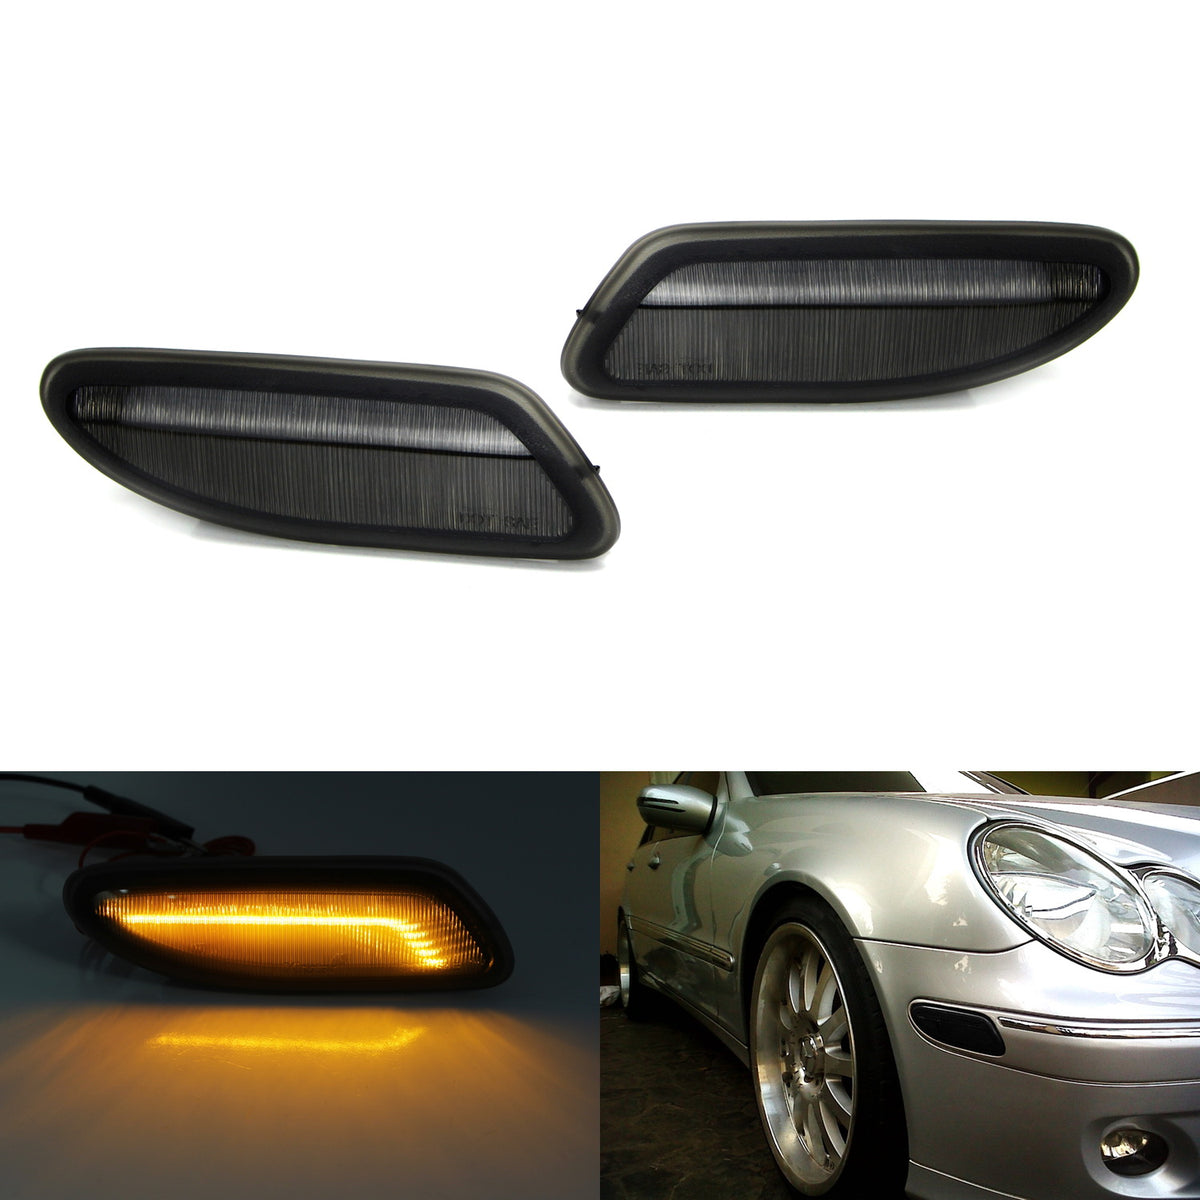 (2) Smoked Lens Amber LED Front Sidemarker Lamps For 2001-2007 Mercedes  W203 C-Class Sedan